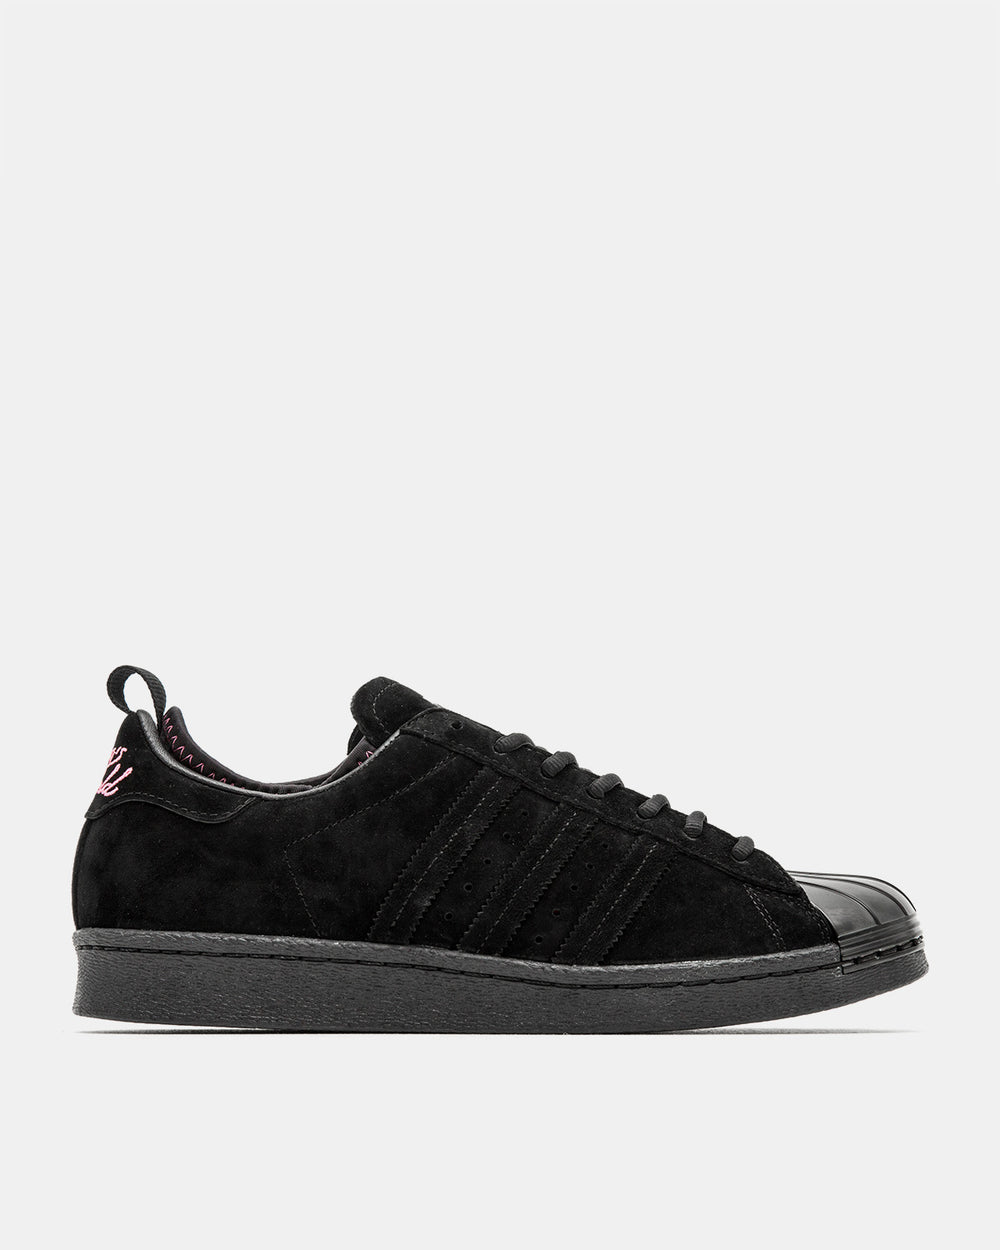 Eddie Huang x adidas Superstar '80s (Triple Black)